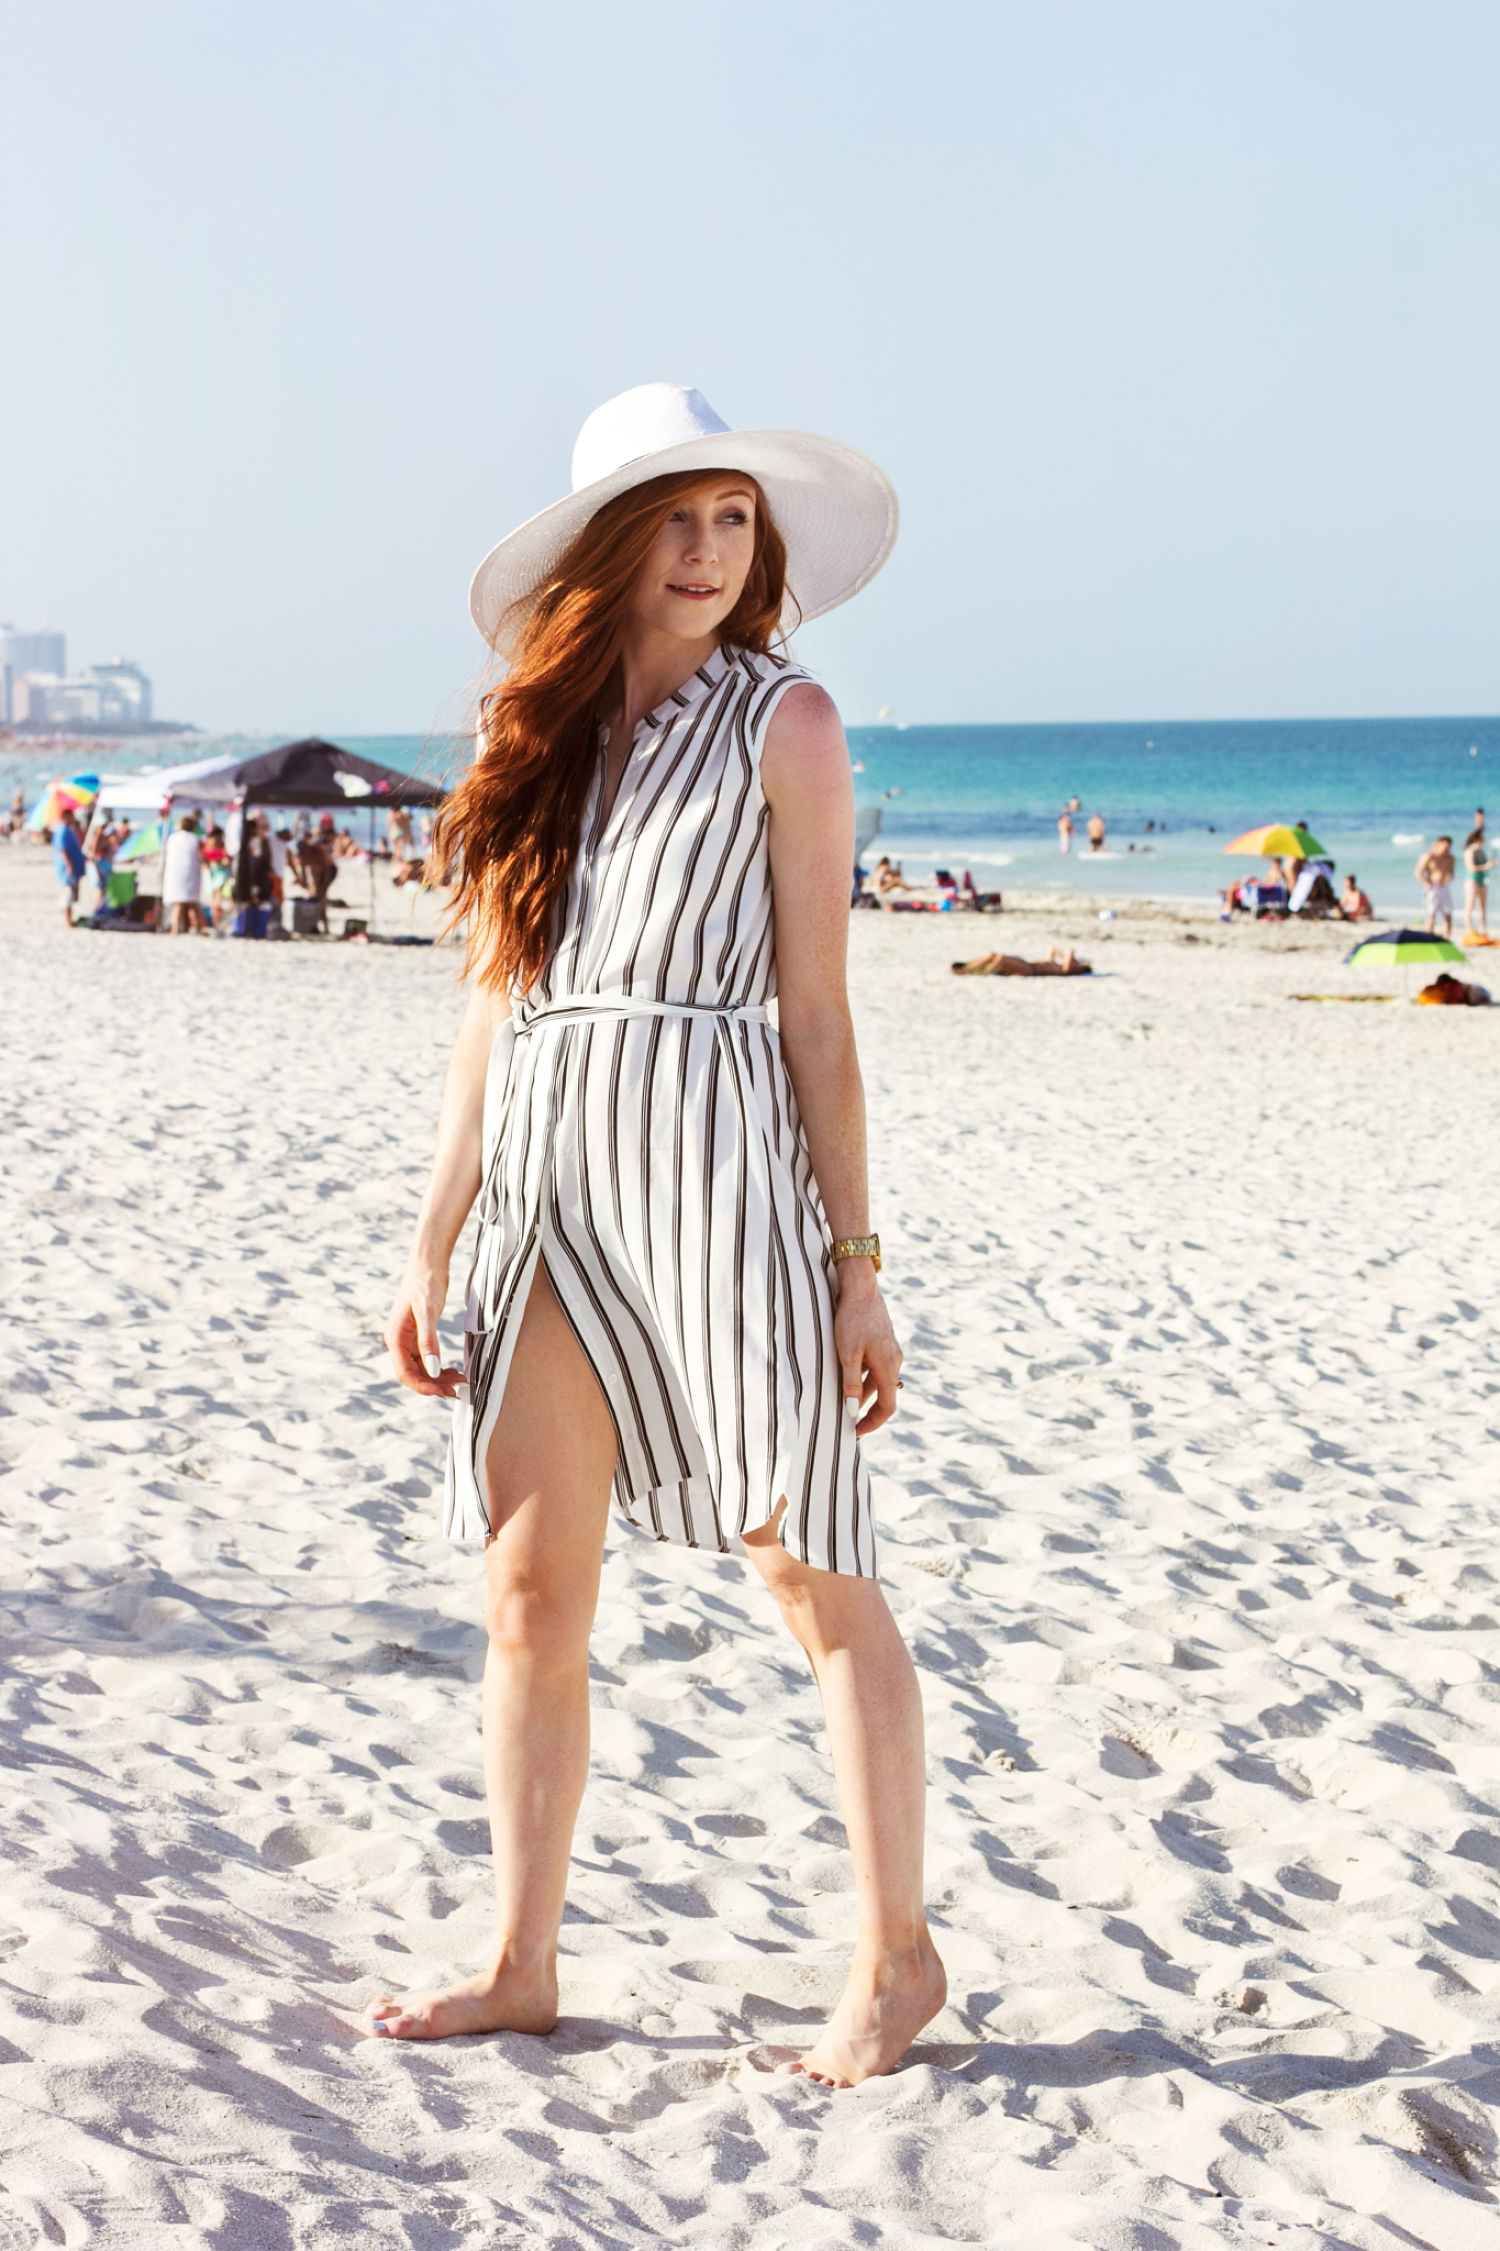 Beach Stripes in Miami - Stripe Shirt Dress - South Pointe Pier